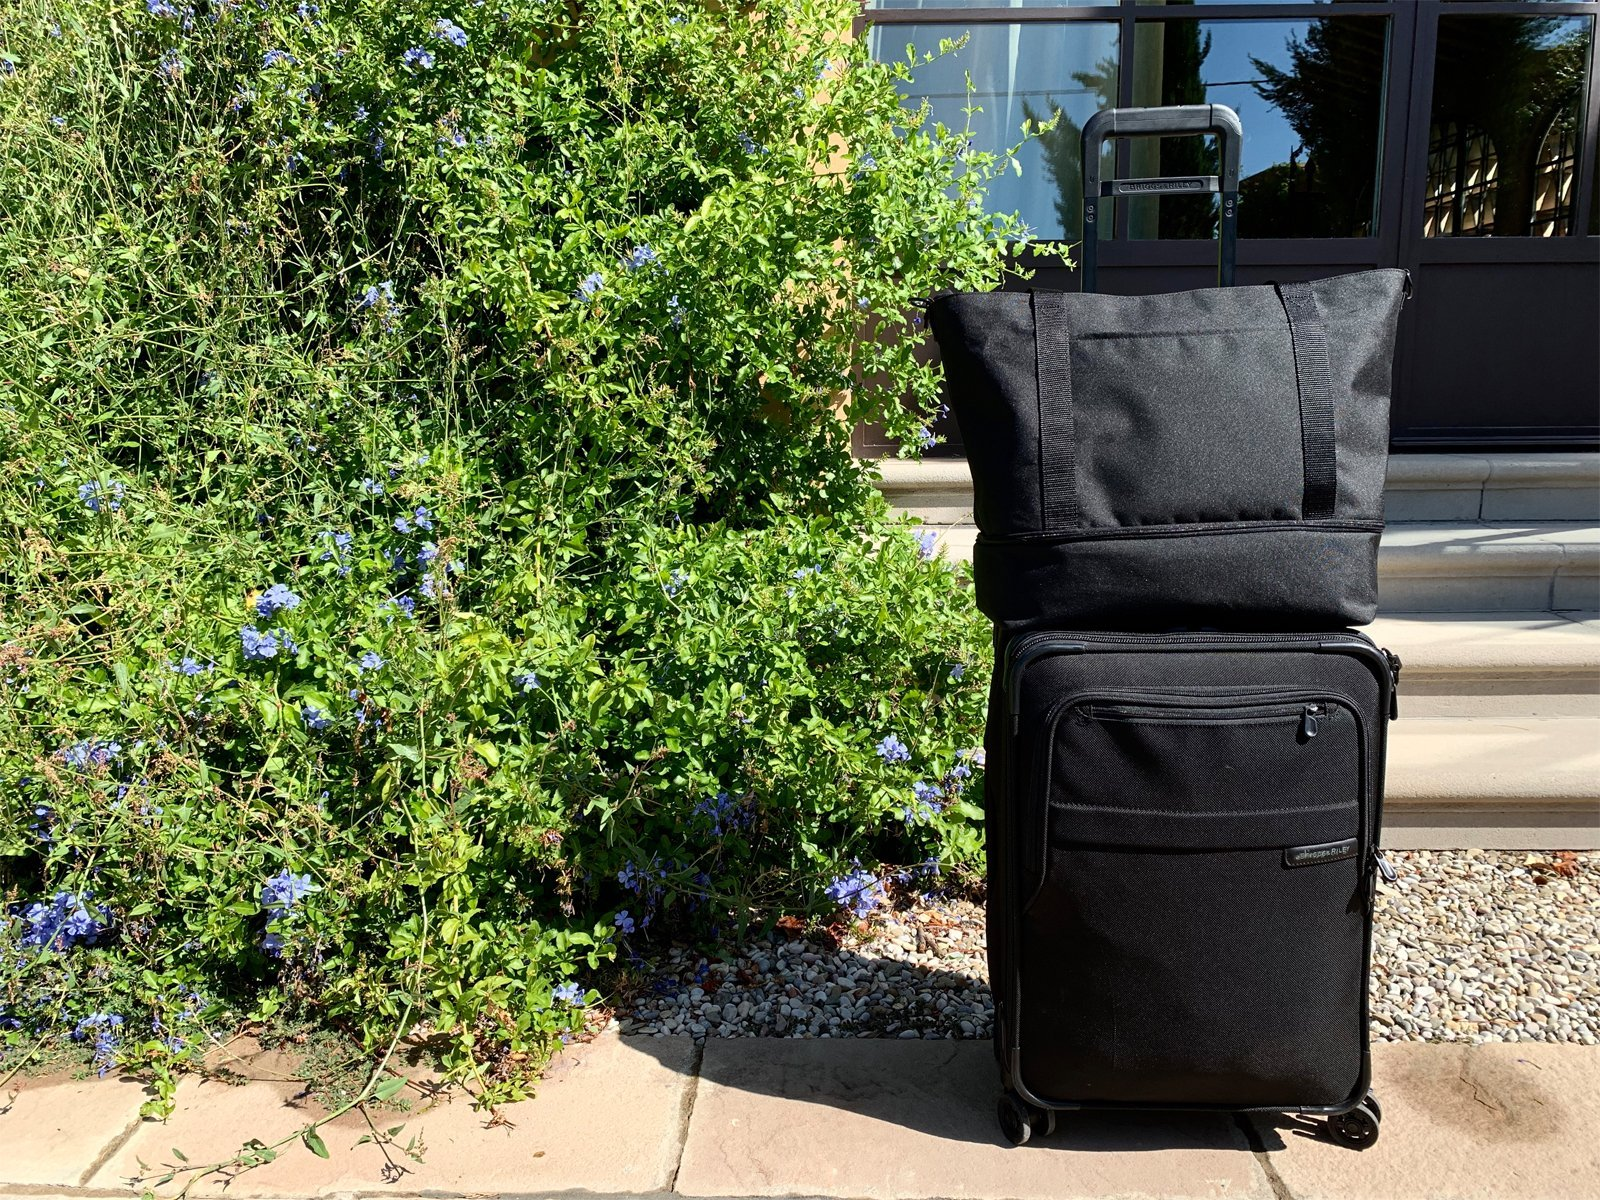 a suitcase and duffel bag are two of my travel essentials